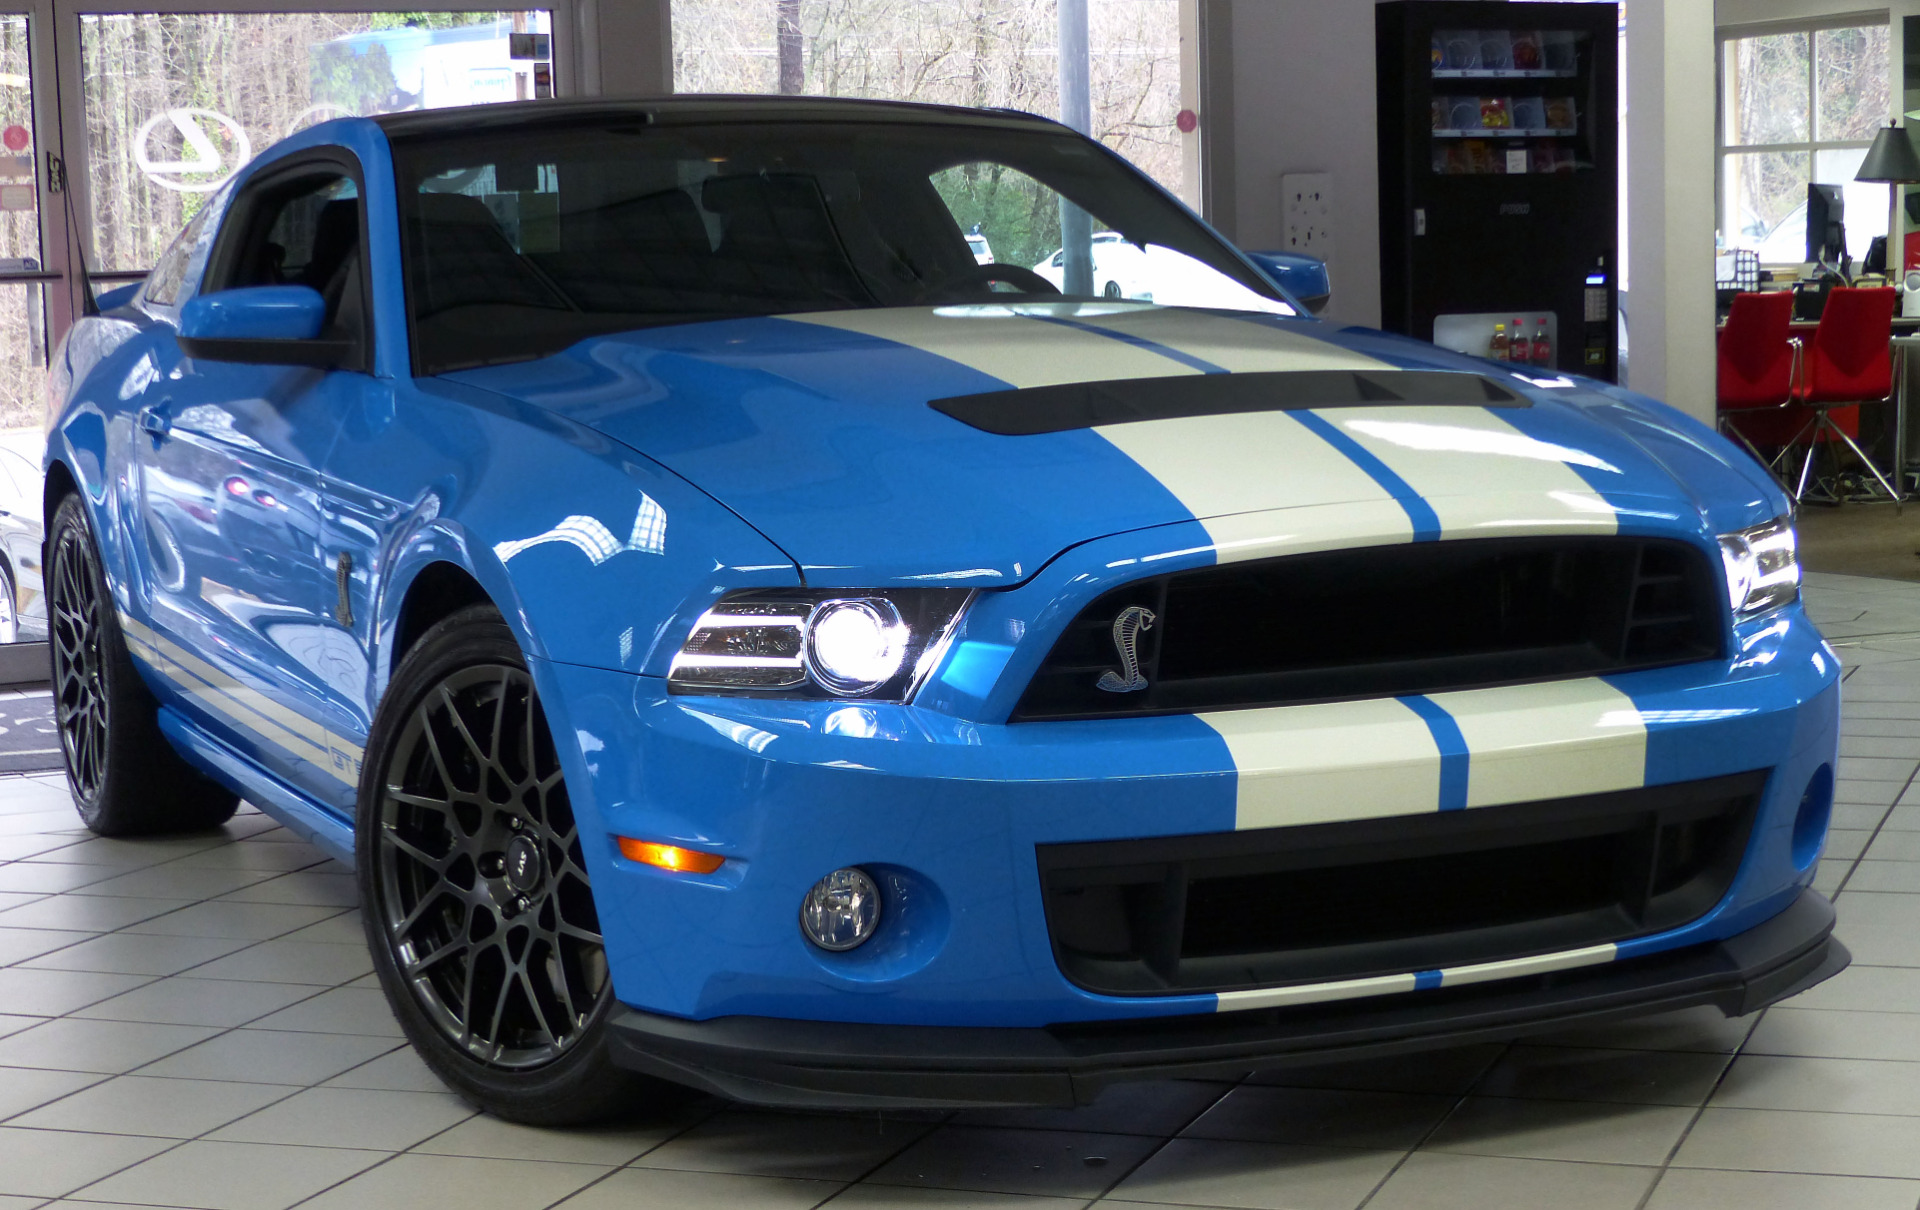 used 2013 ford mustang shelby gt500 marietta ga. Black Bedroom Furniture Sets. Home Design Ideas